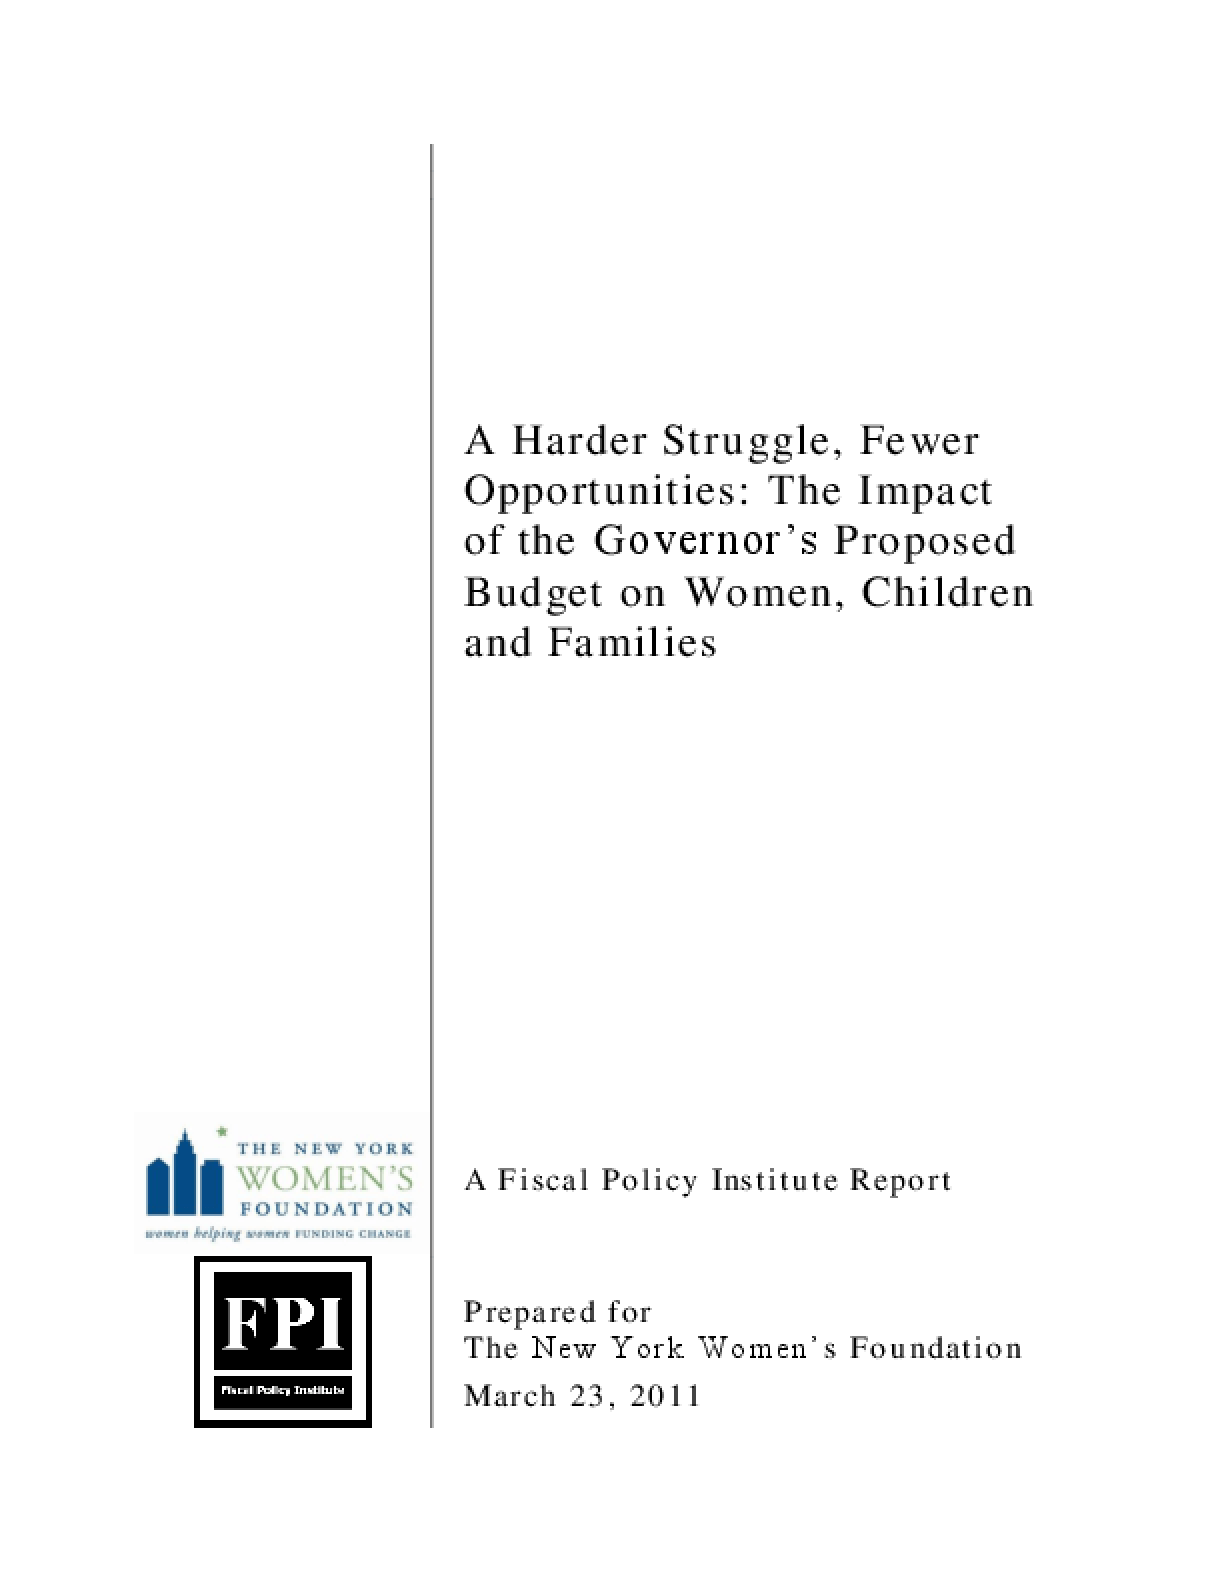 A Harder Struggle, Fewer Opportunities: The Impact of the Governor's Proposed Budget on Women, Children and Families